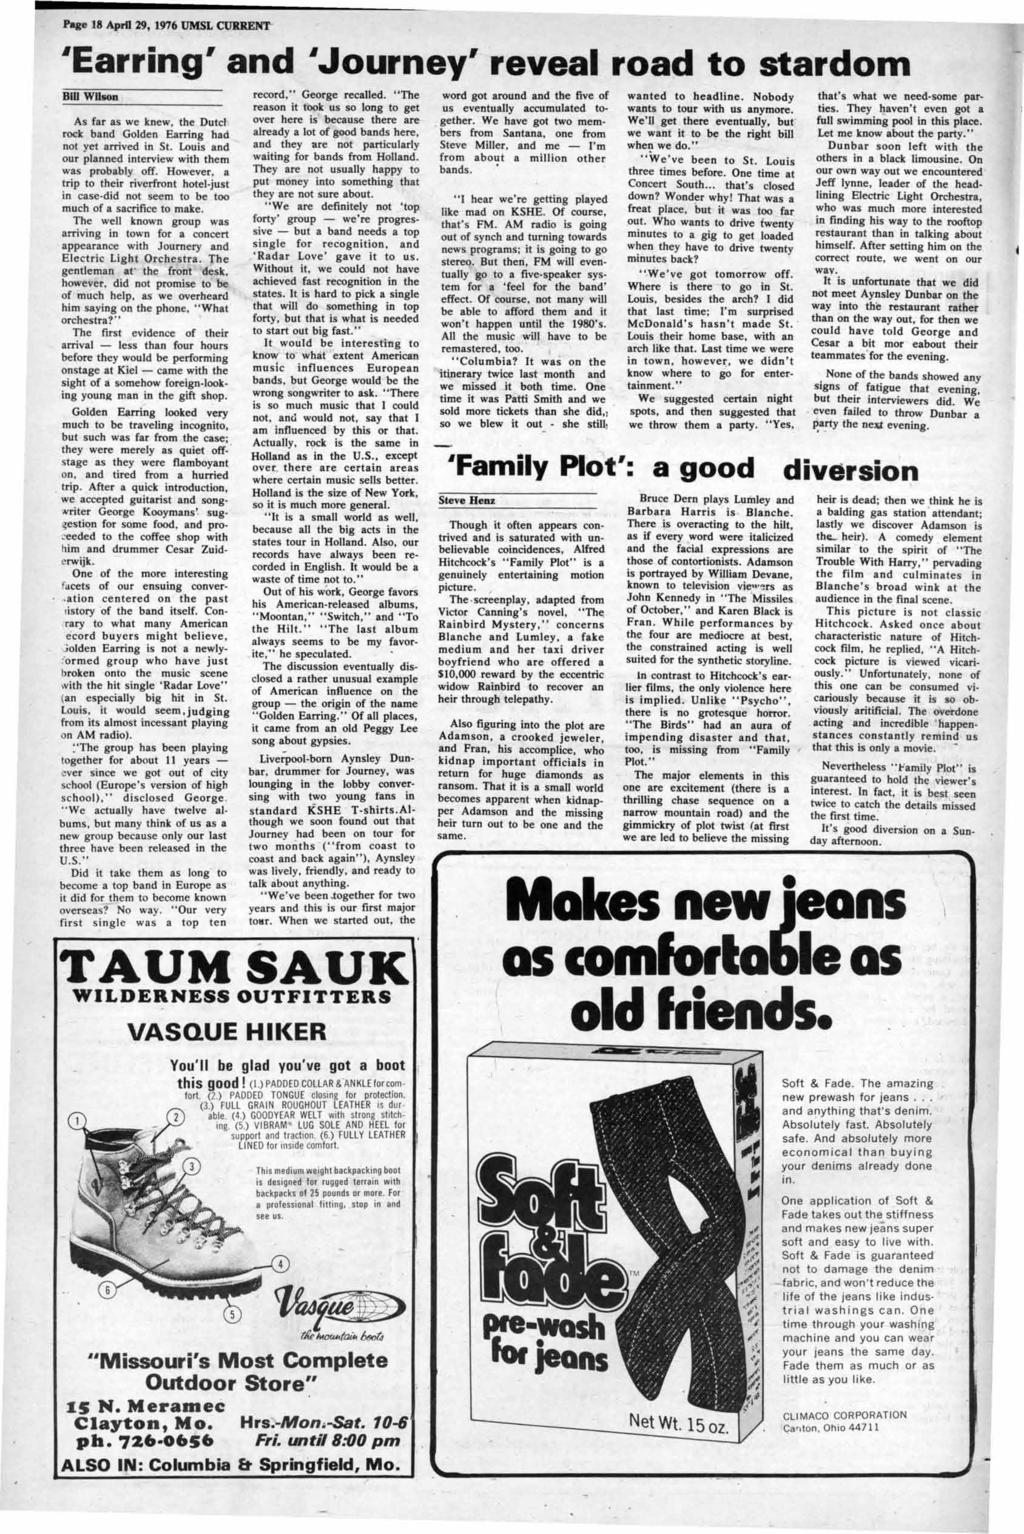 Page 18 April 29, 1976 UMSL CURRENT IEarring' and I Journey' reveal road to stardom Bm WUSOB As far as we knew, the Dutcl rock band Golden Earring had not yet a.rrived in St.